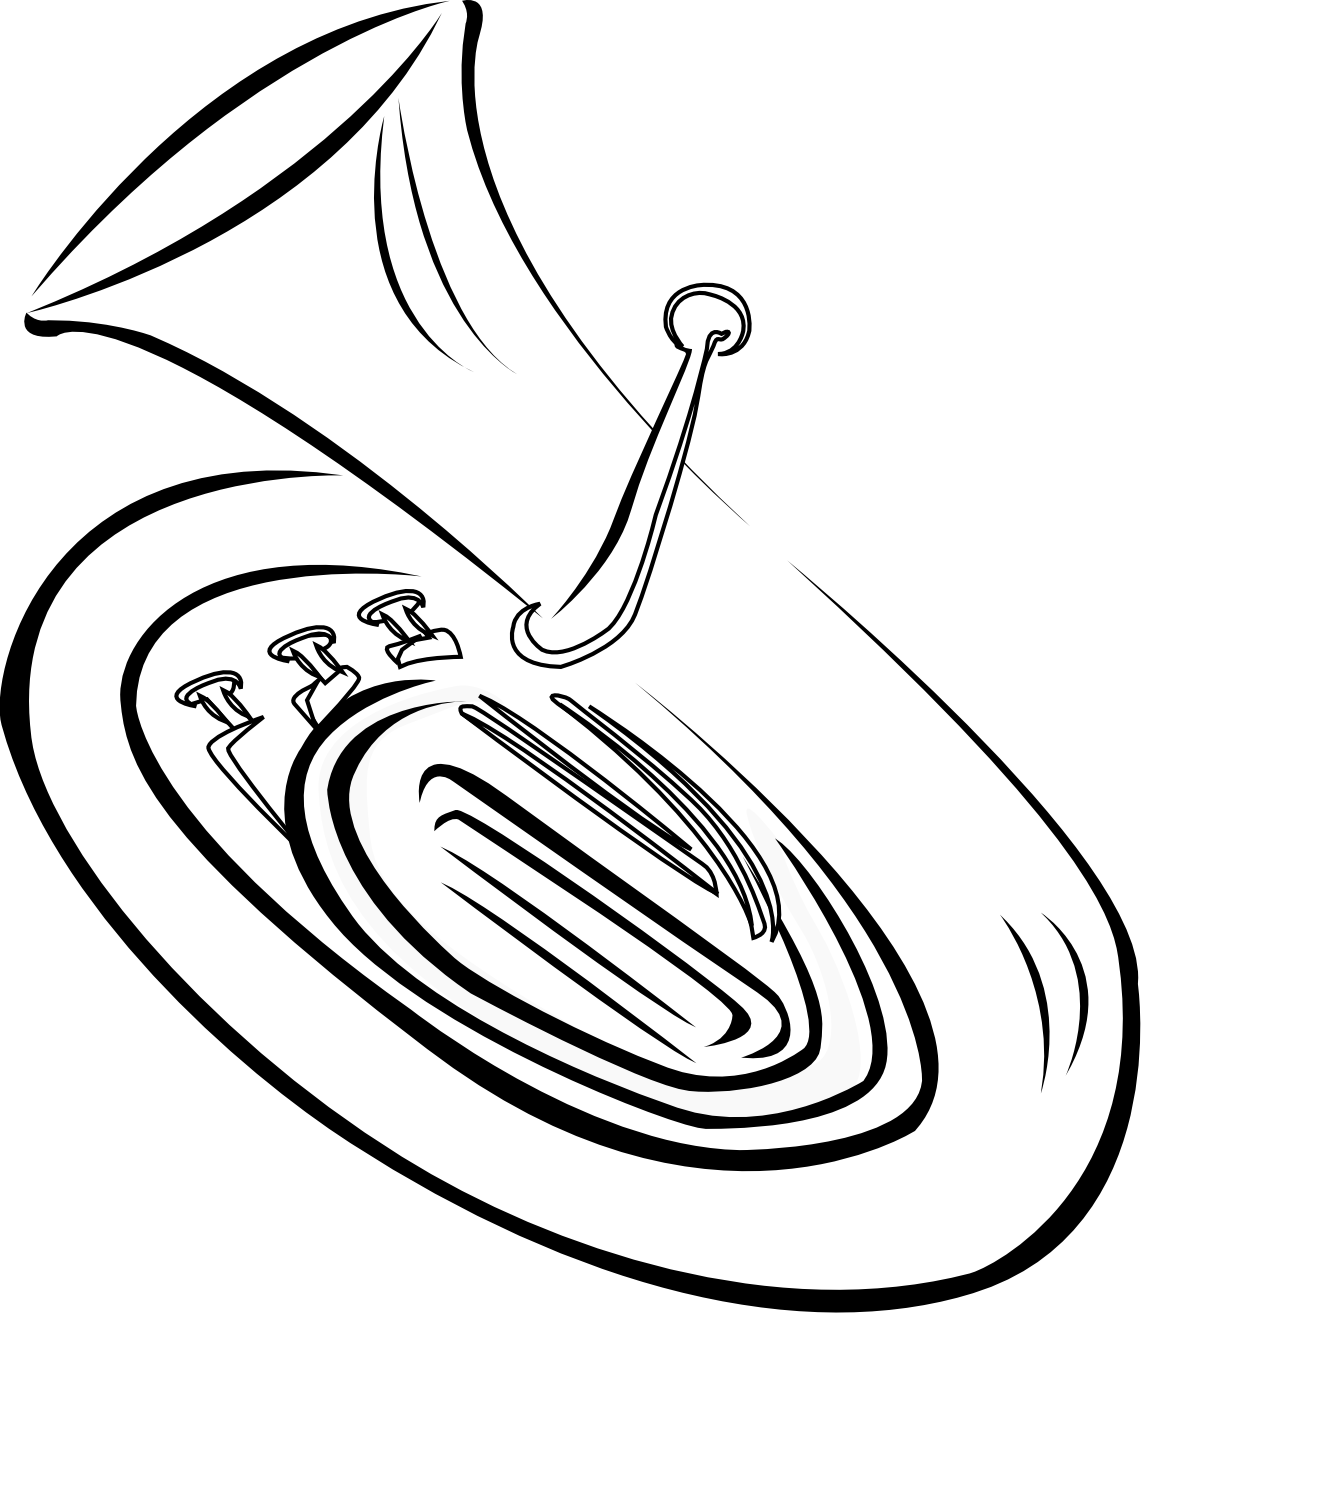 French Horn Black And White Clipart - Clipart Kid